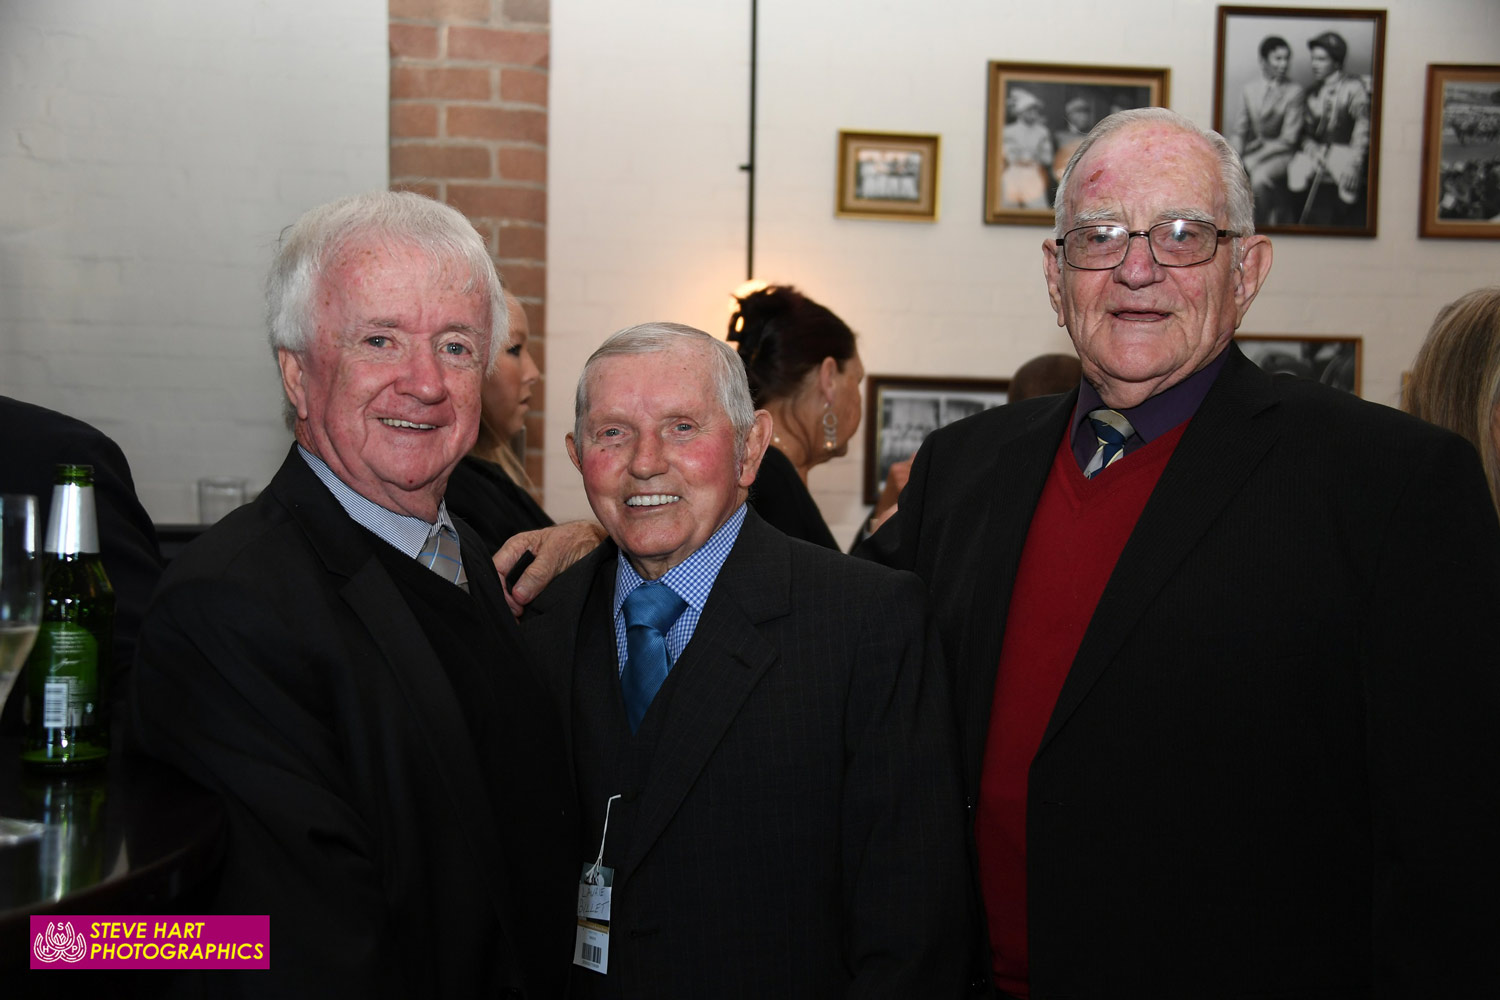 Kevin Langby with Laurie Billett (1965 GoldenSlipper on Reisling) and Brian Killian former top apprentice and long time member of the AJC Stewards panel.